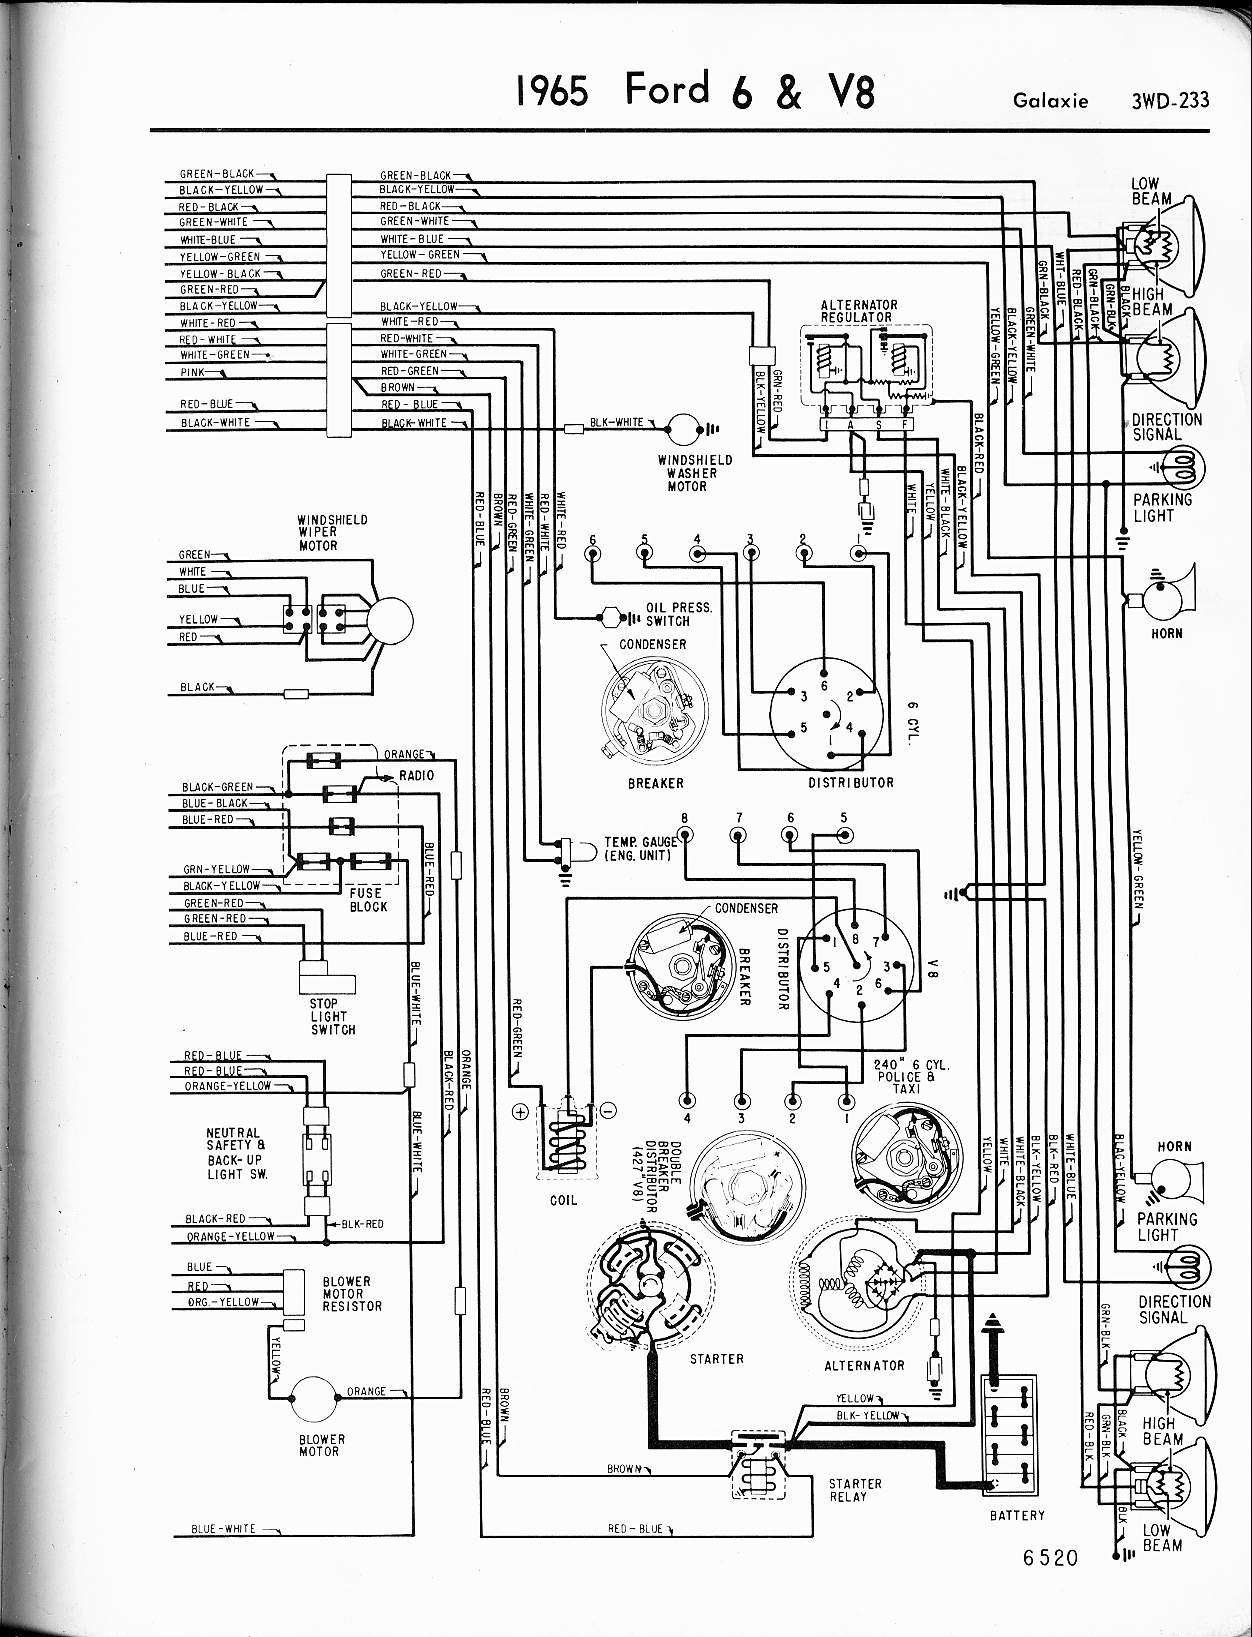 1966 mustang wiring diagram pdf with Fordindex on 41936  meter Voltmeter 2 moreover Trx250r Wiring Diagram furthermore Skytrak 6036 Electro Joystick Wiring Diagram as well 1966 Ford Mustang Wiring Diagram besides 686047 64 1 2 Mustang Turn Signal Issue.